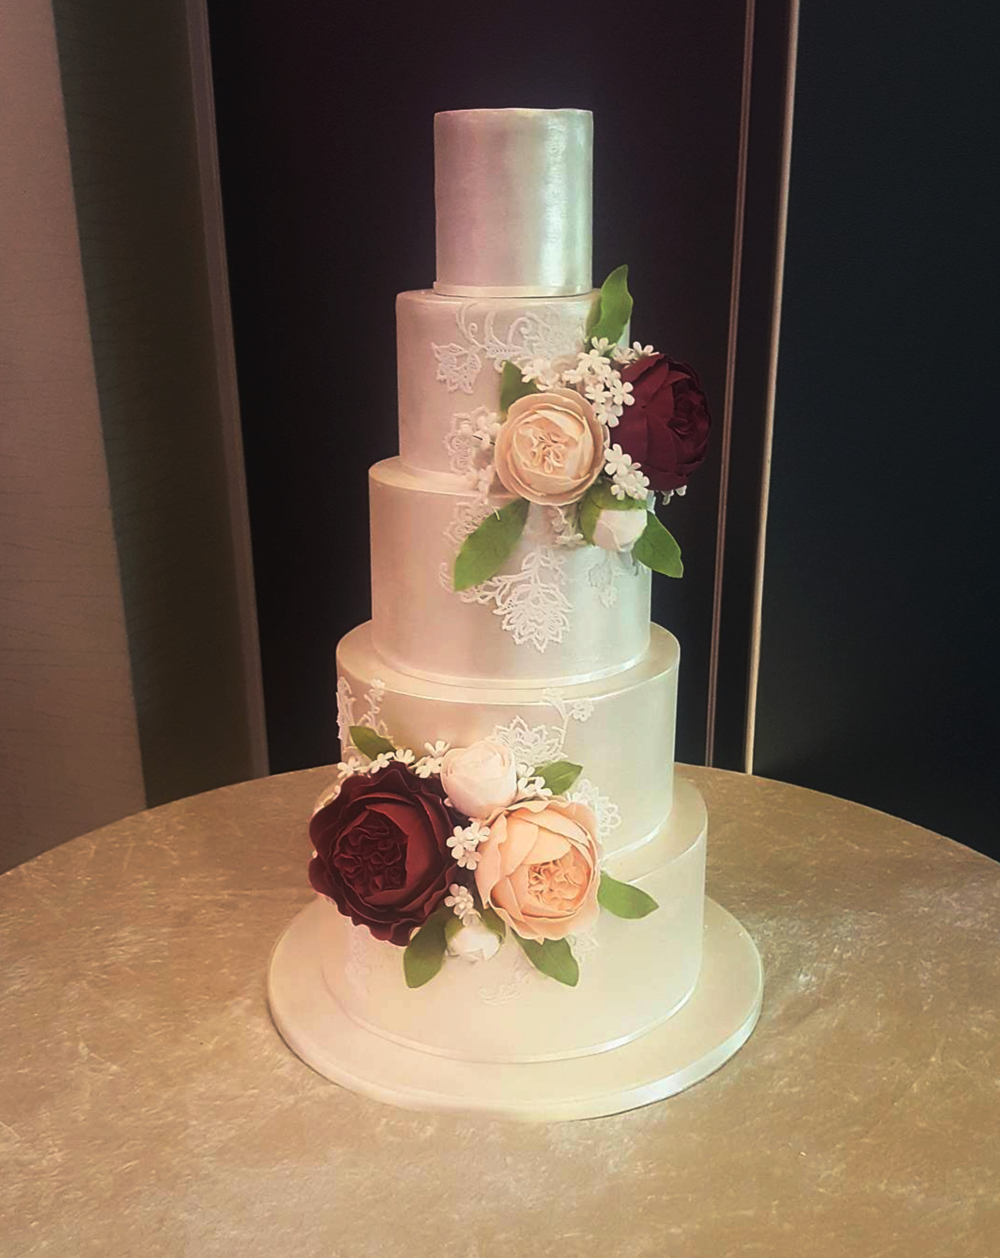 DOTTY ROSE CAKE DESIGN 5 TIER SILVER LUSTRE LACE WEDDING CAKE.png